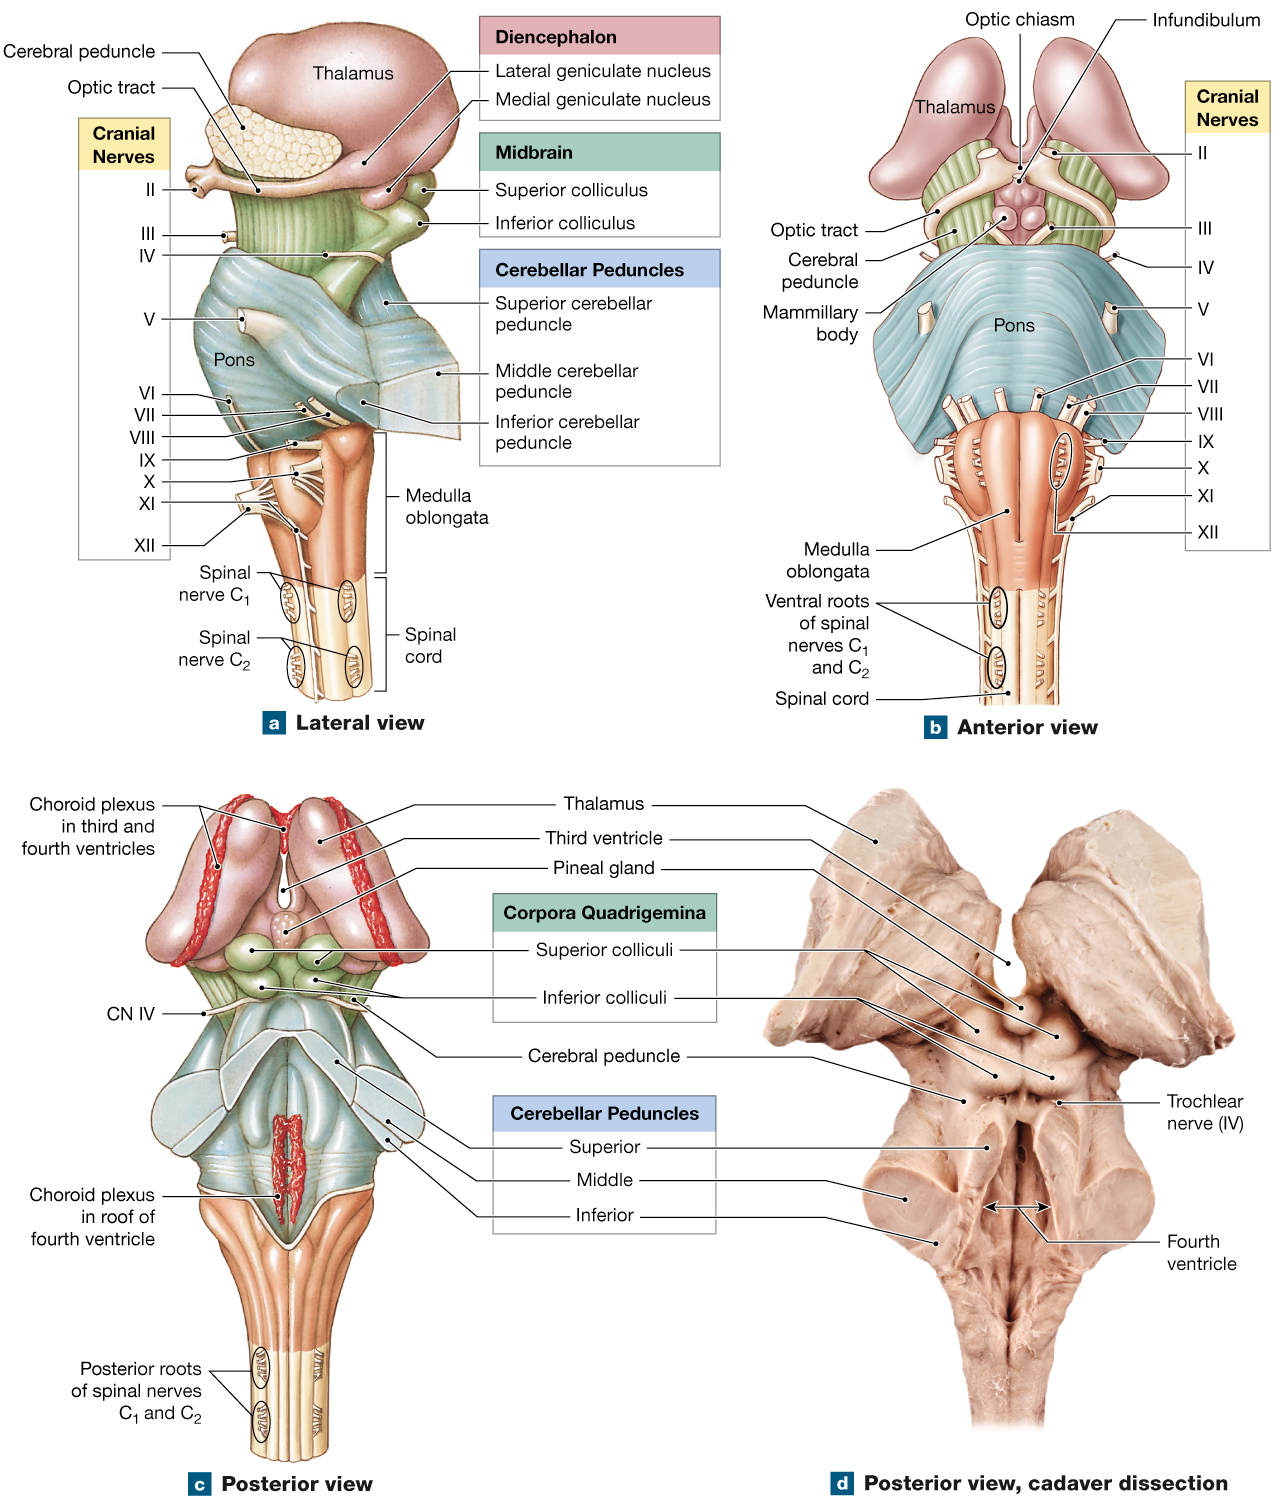 14.3: Brainstem: The medulla oblongata relays signals between the ...